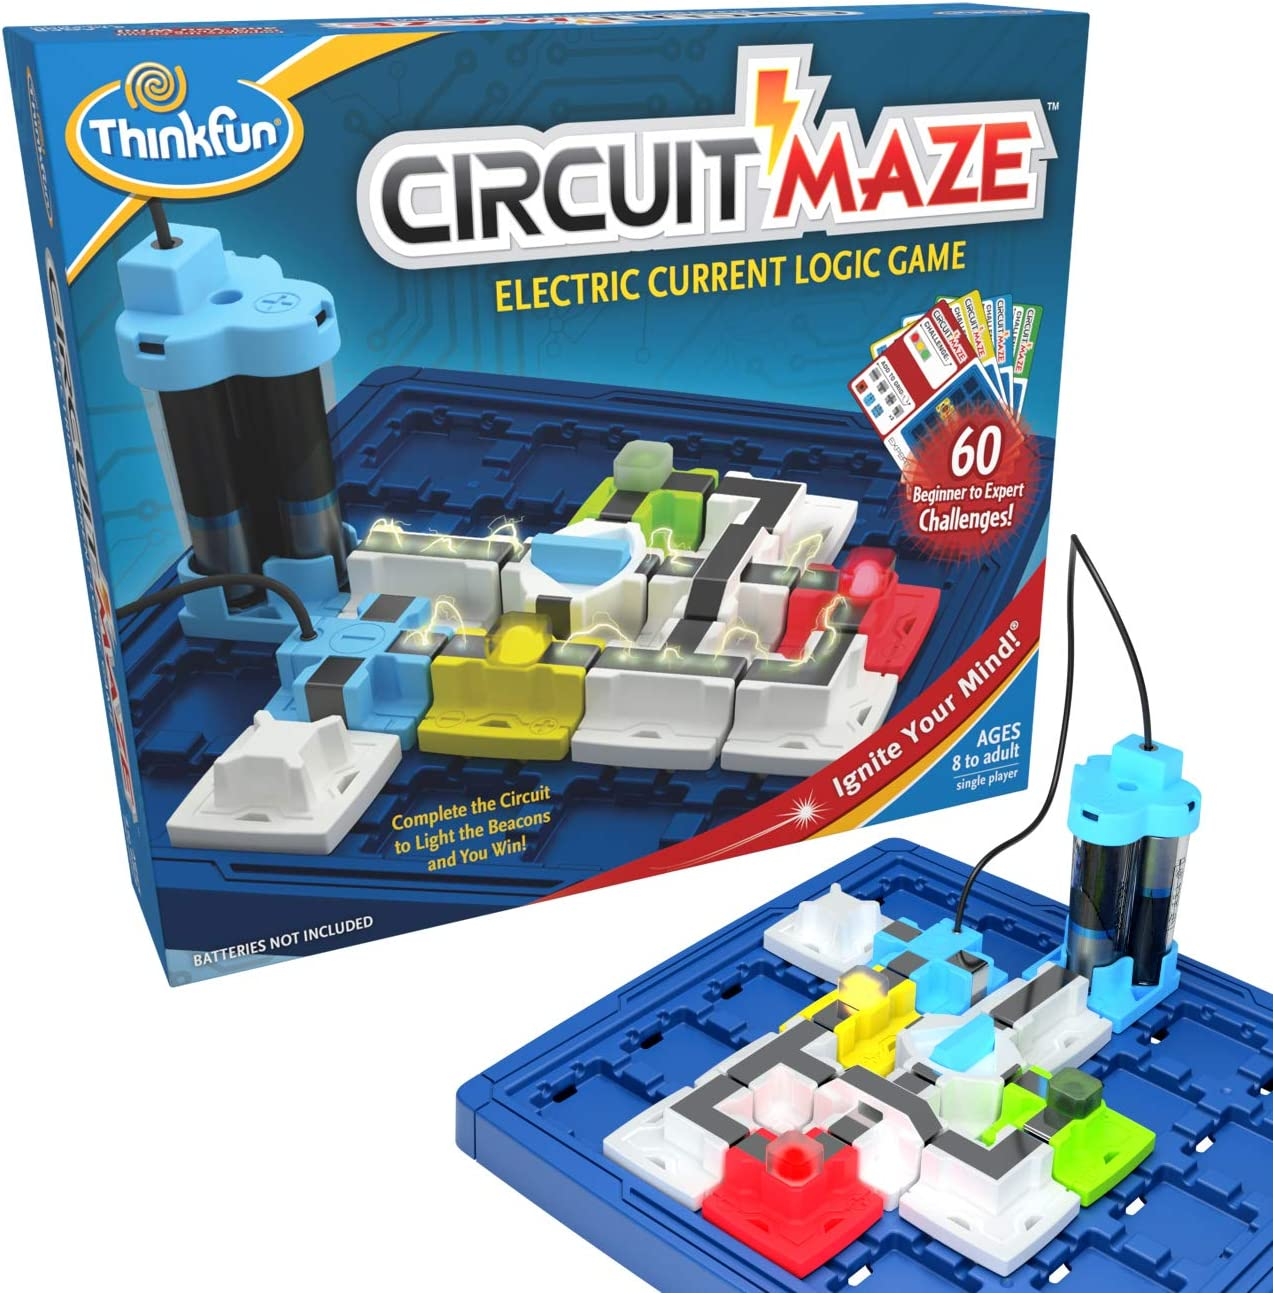 ThinkFun Circuit Maze Electric Current Brain Game and STEM Toy